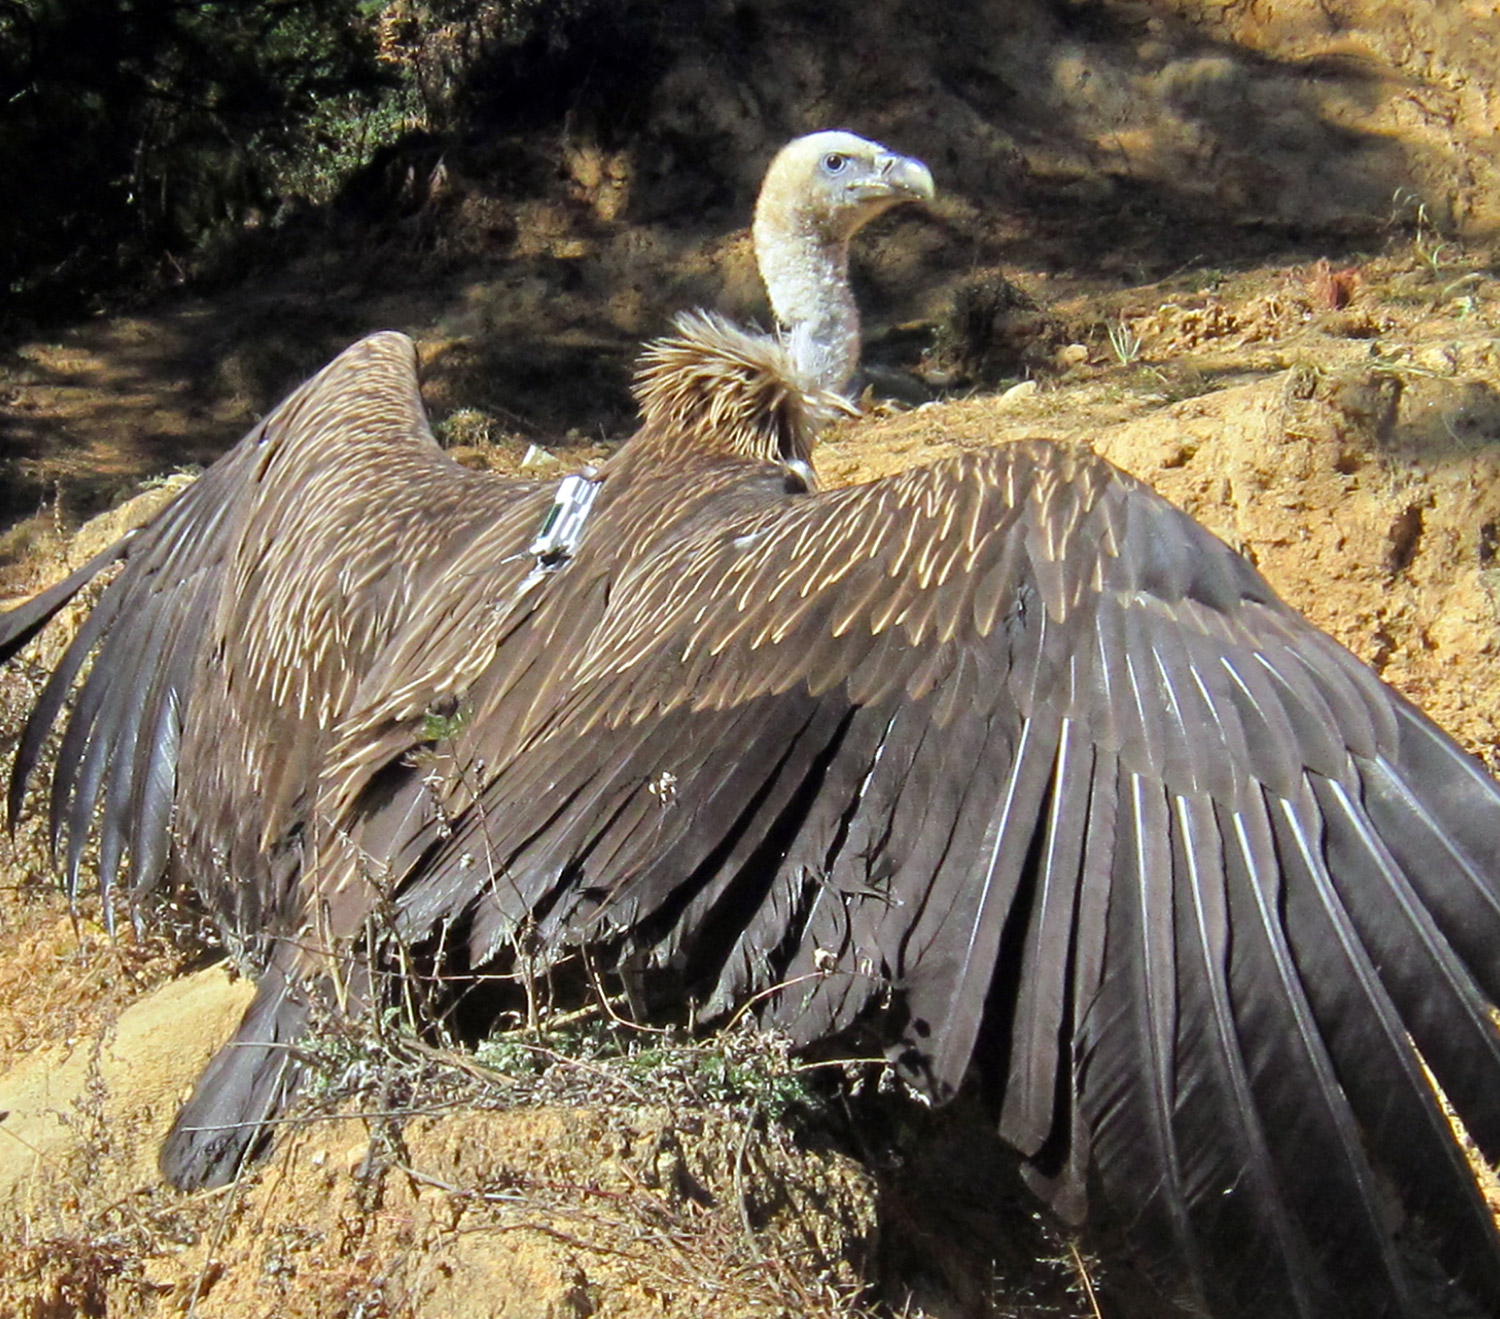 Himalayan griffon vulture carrying a telemetry backpack. Picture courtesy of Ugyen Tenzin & Max Planck Institute for Ornithology.